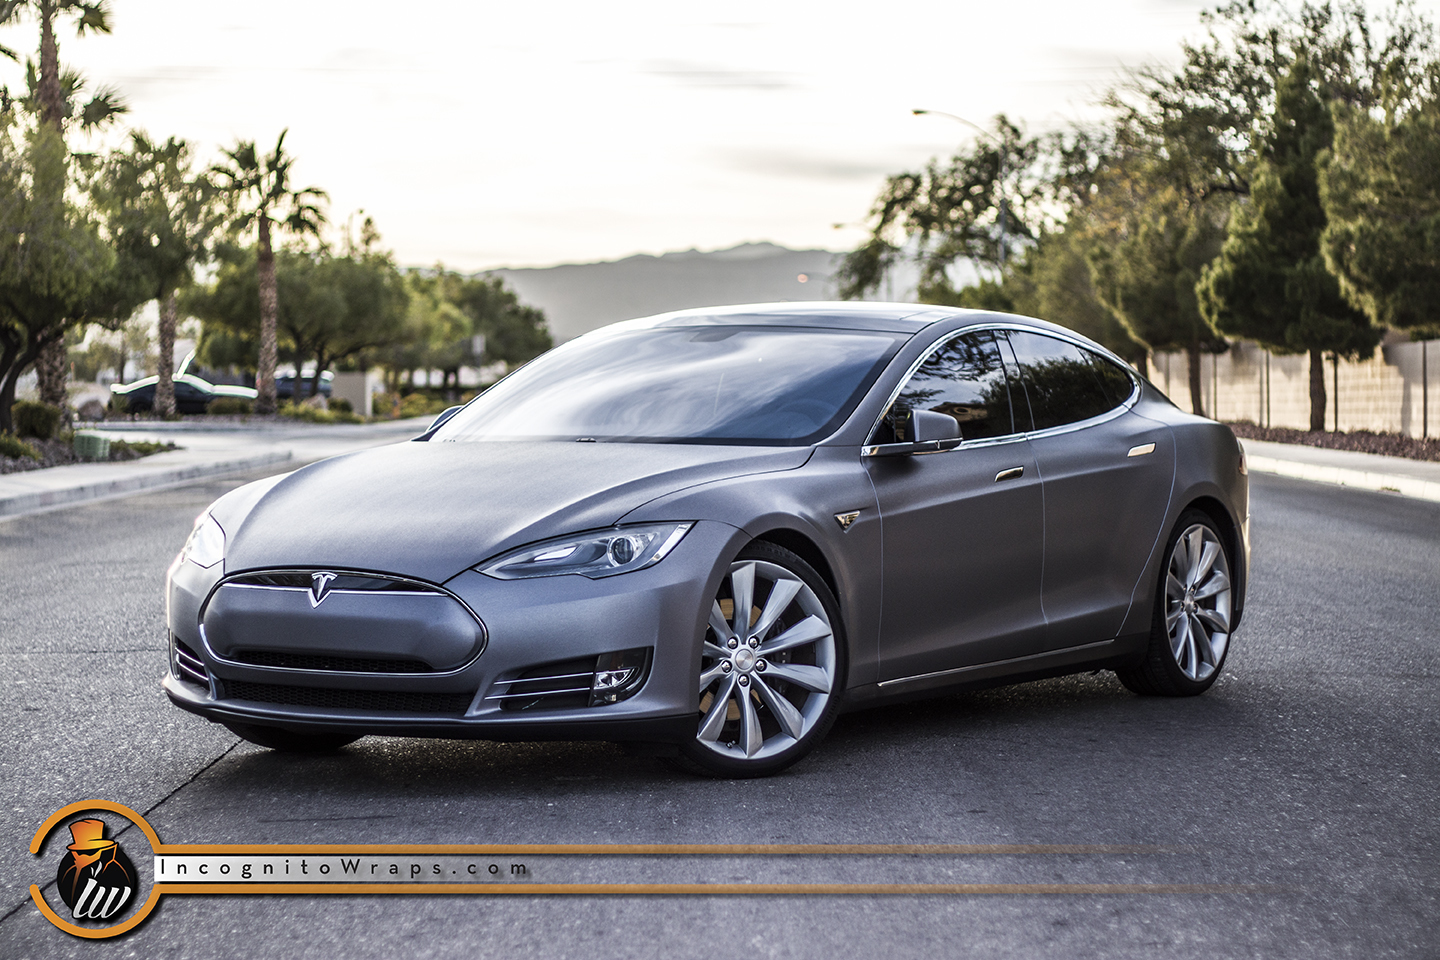 Tesla Model S First Generation - Brushed Steel